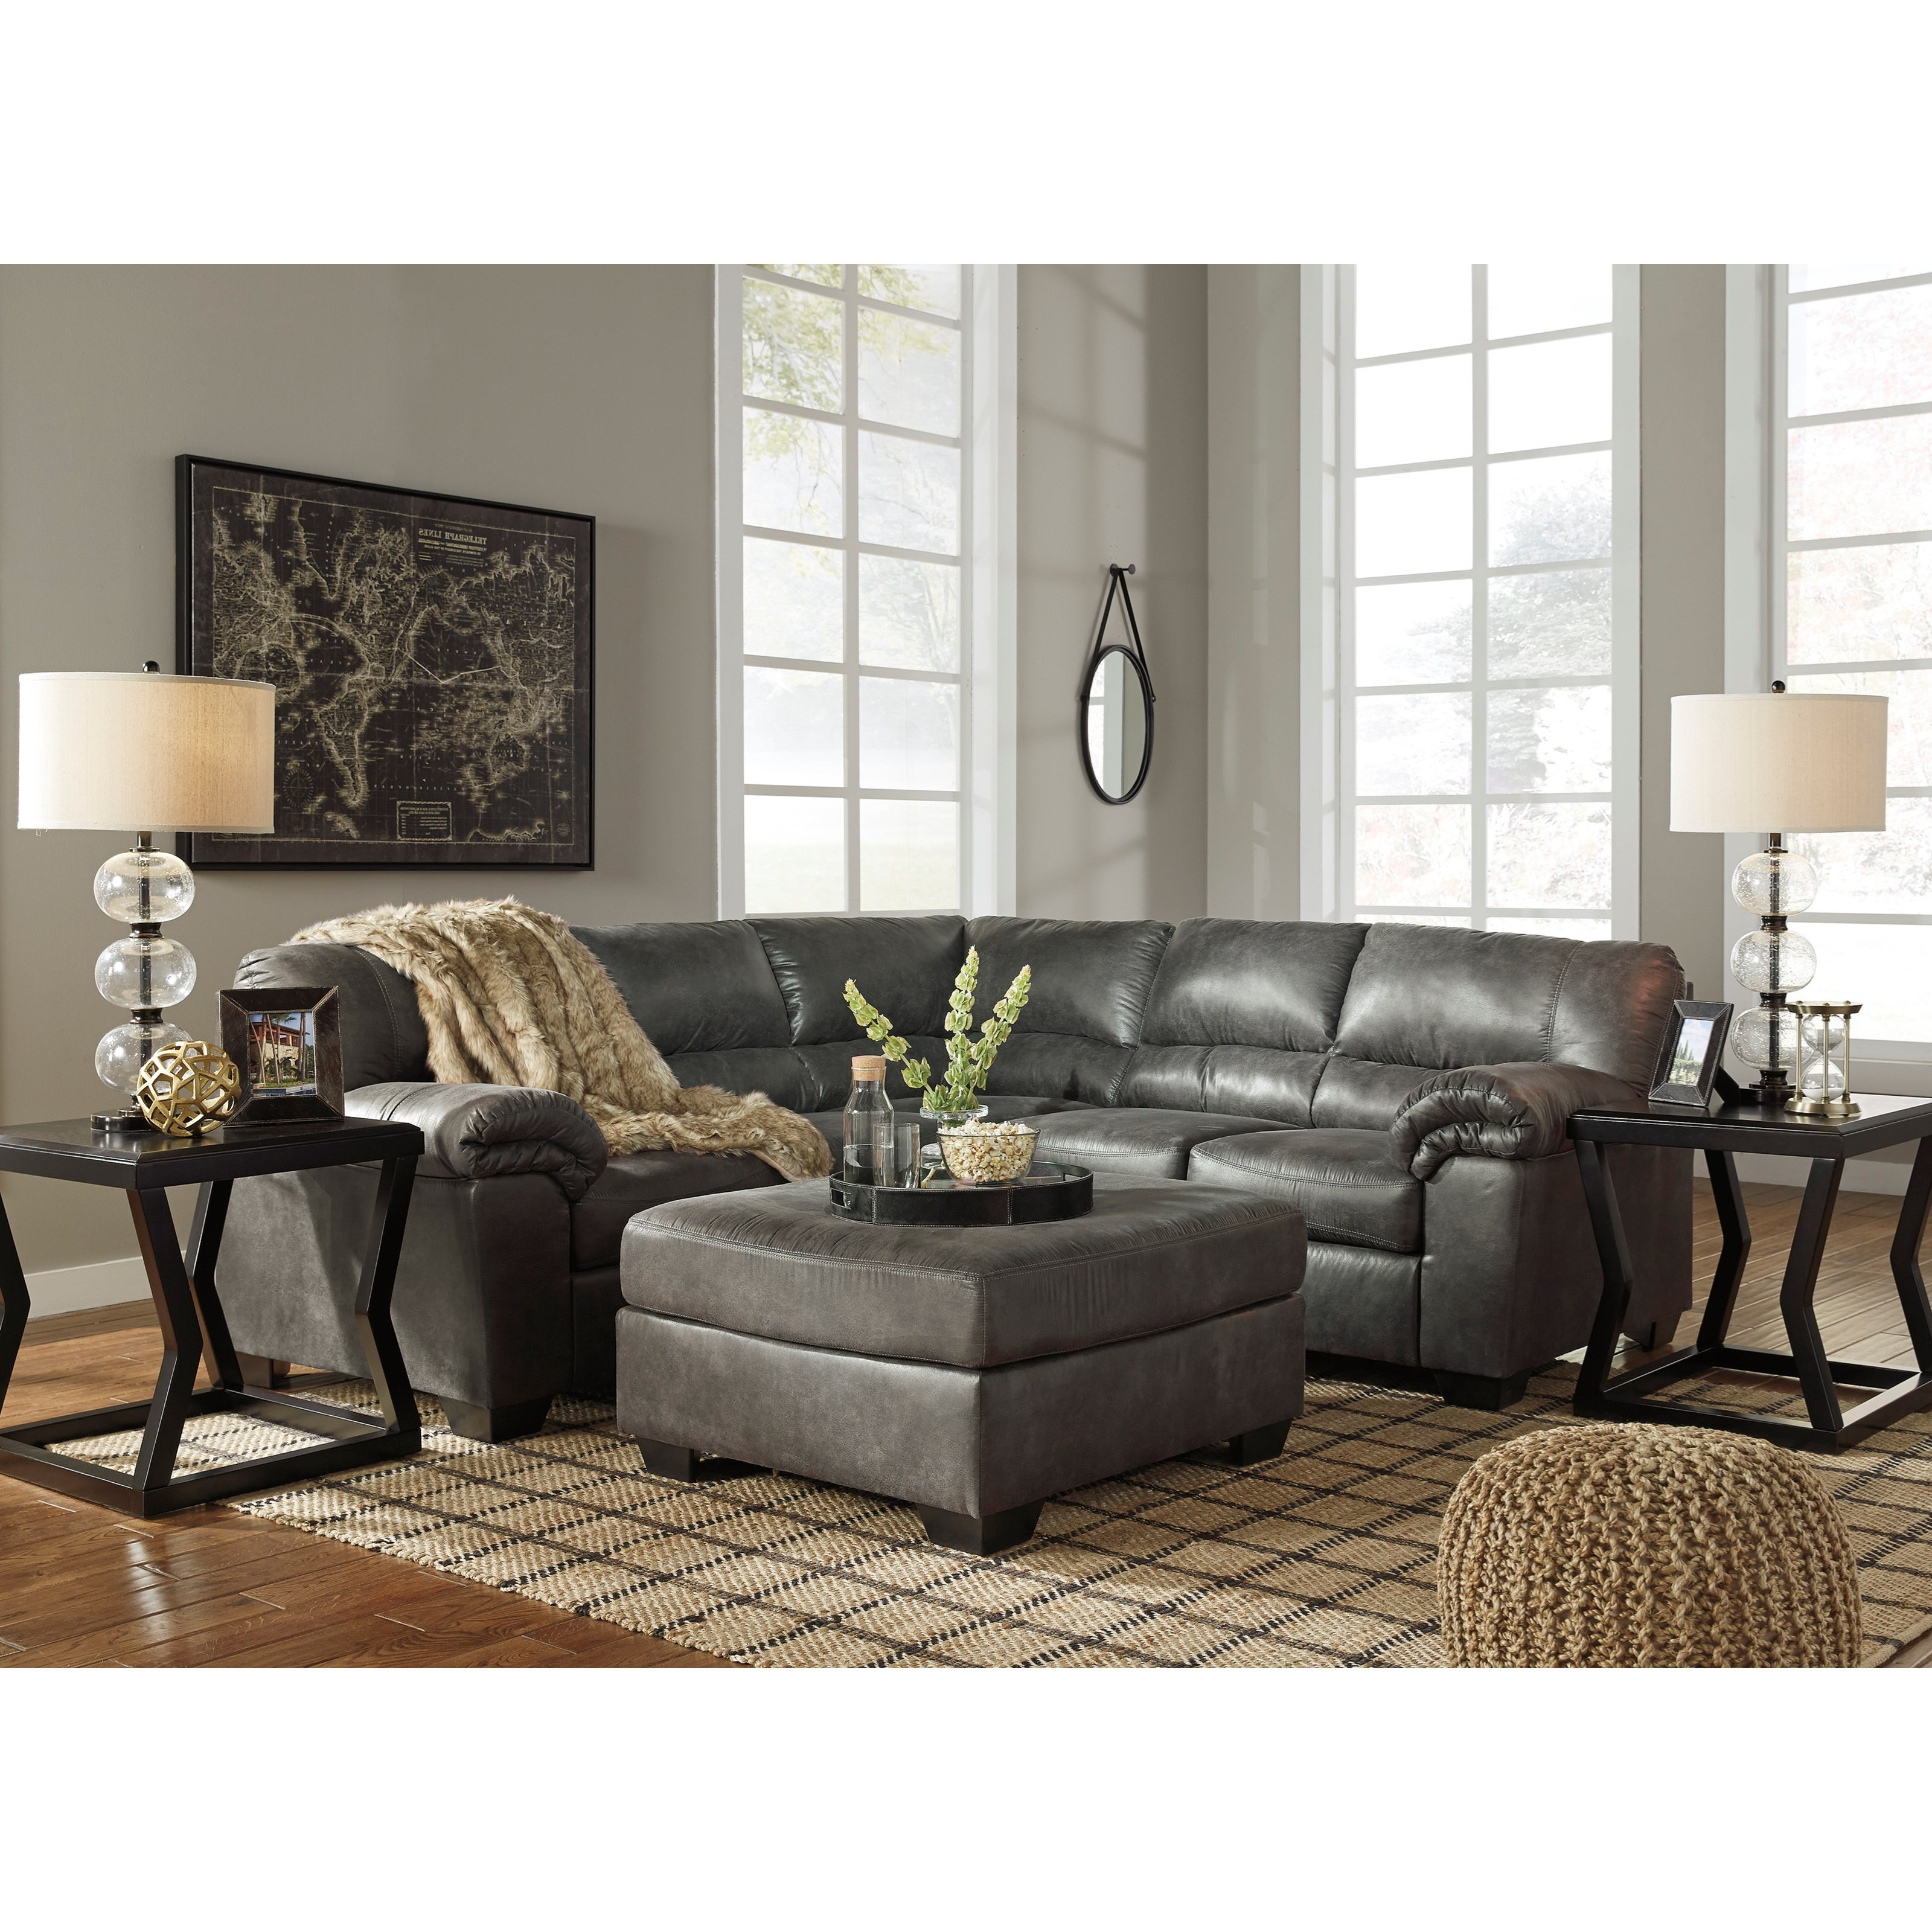 Ashley City Furniture: Signature Design By Ashley Bladen Stationary Living Room